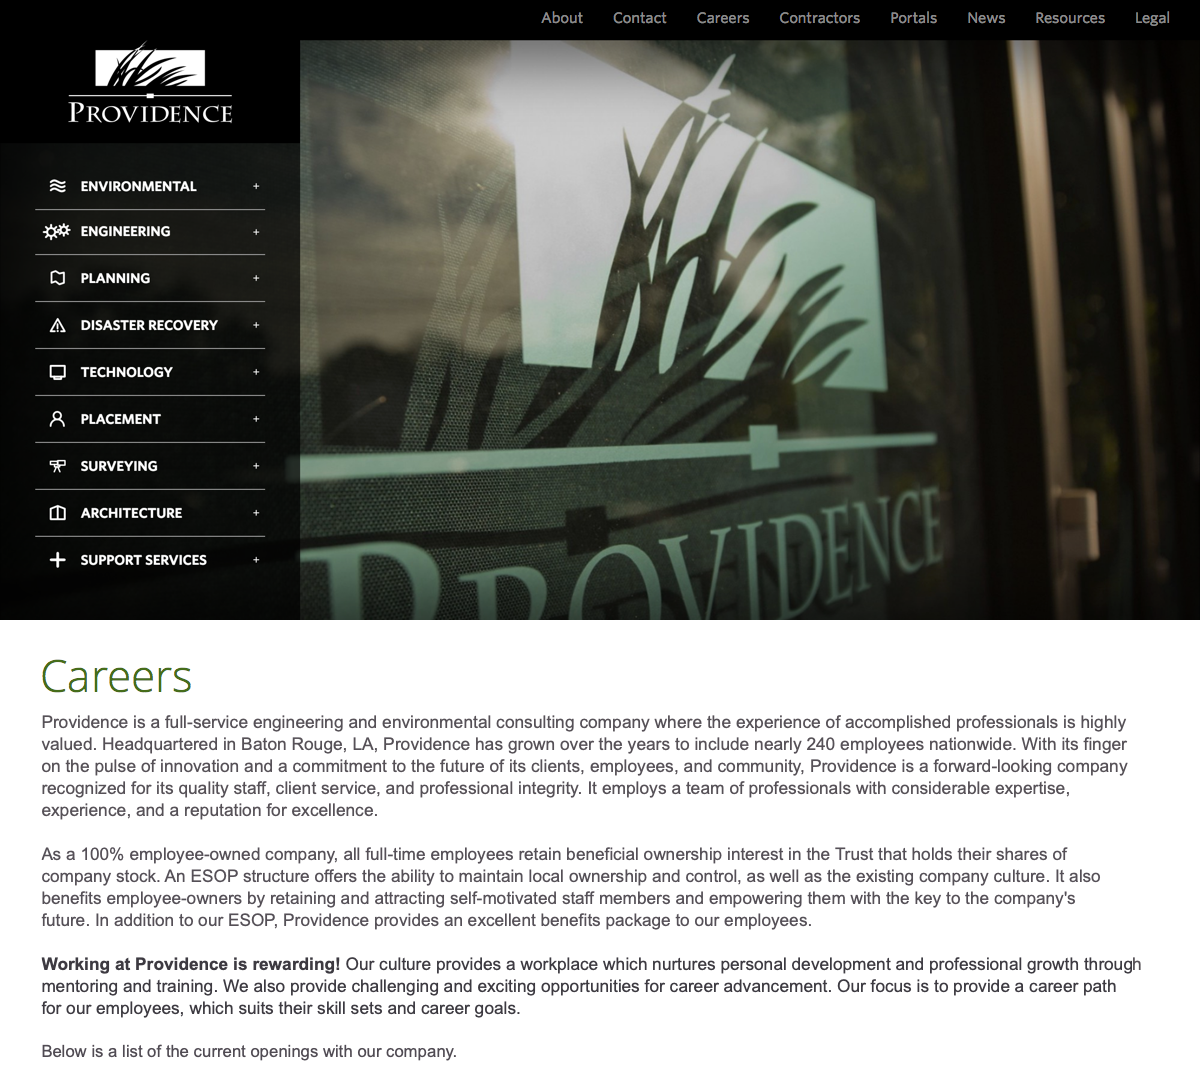 Providence – An Engineering and Environmental Firm